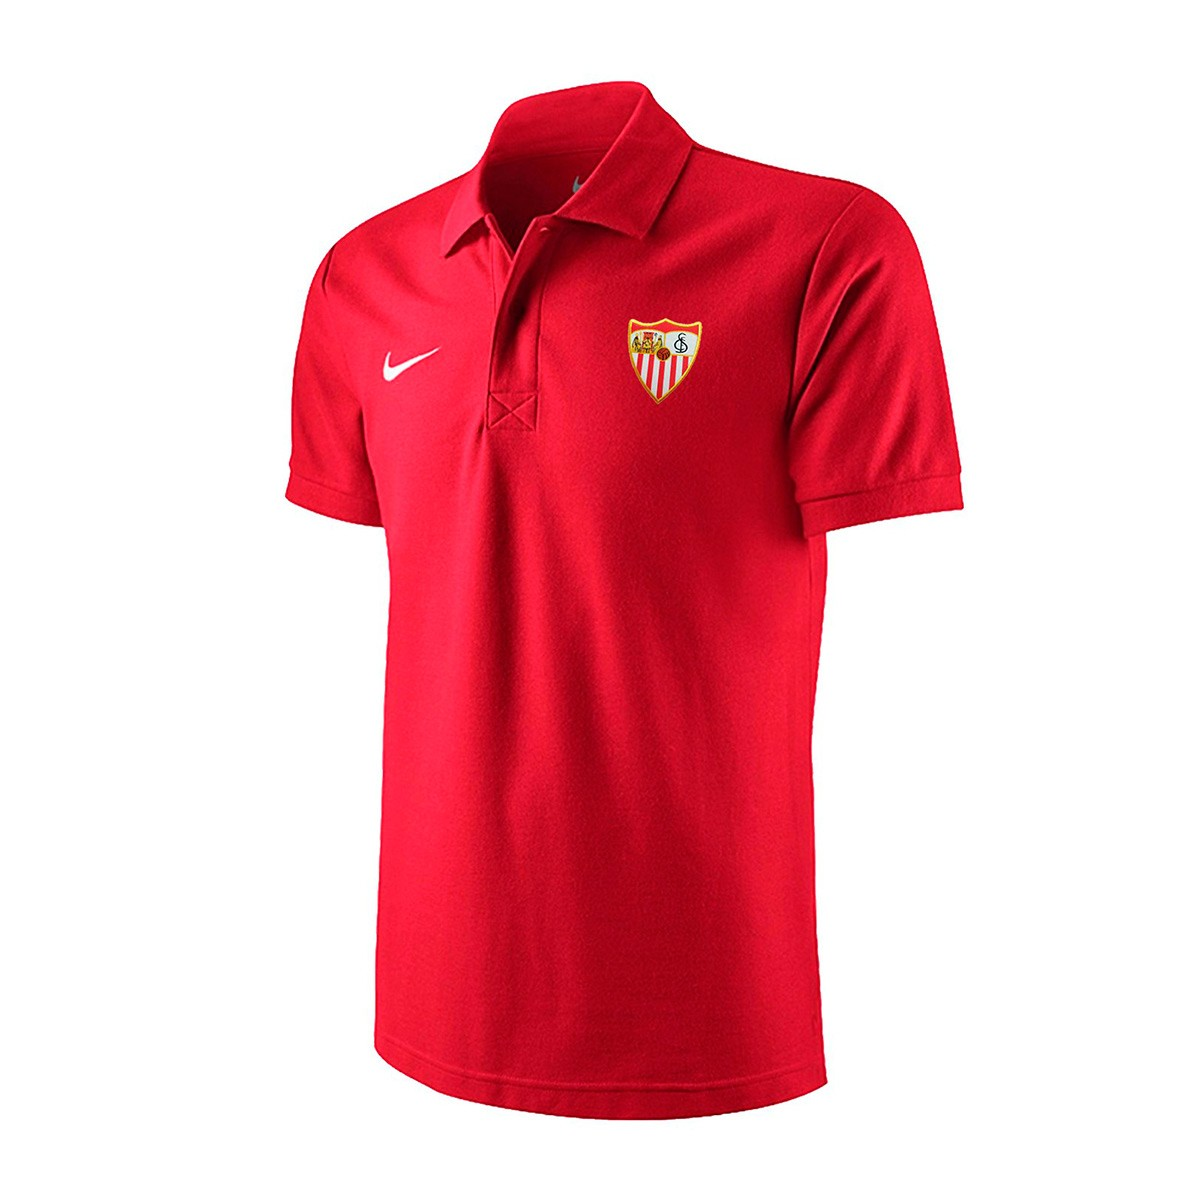 9dcc1355d2e98 Polo shirt Nike Sevilla FC 2018-2019 Red - Football store Fútbol Emotion